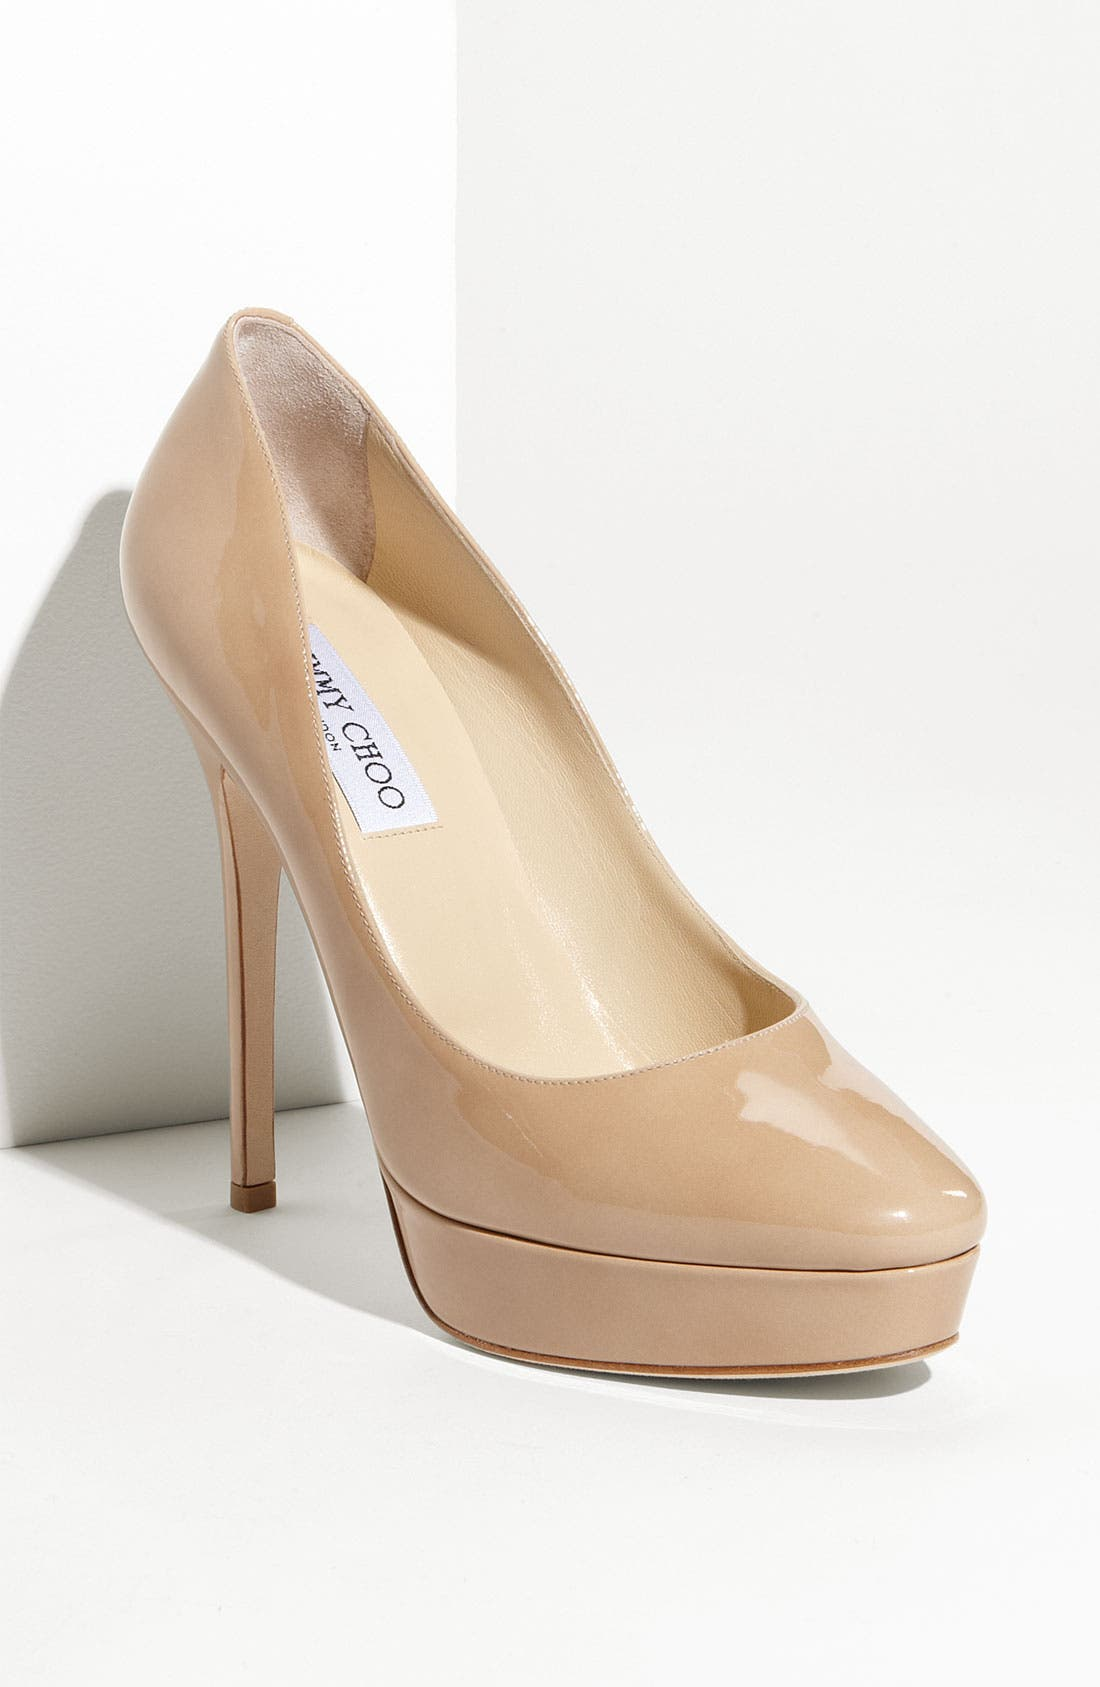 Alternate Image 1 Selected - Jimmy Choo 'Cosmic' Platform Pump